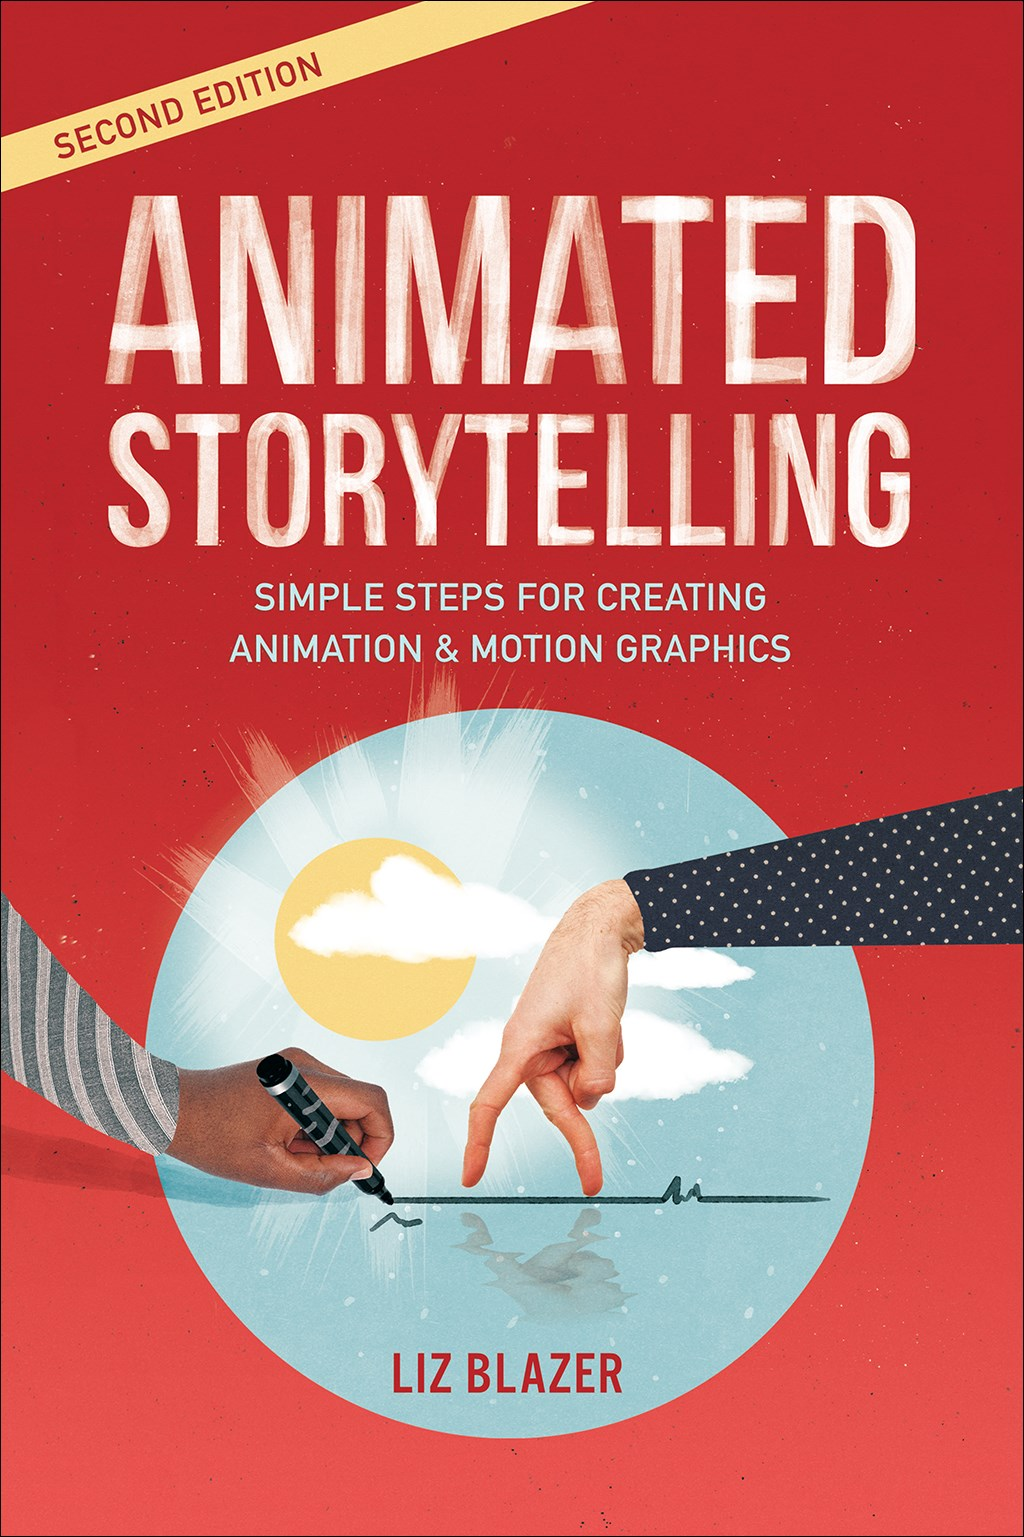 Animated Storytelling, 2nd Edition